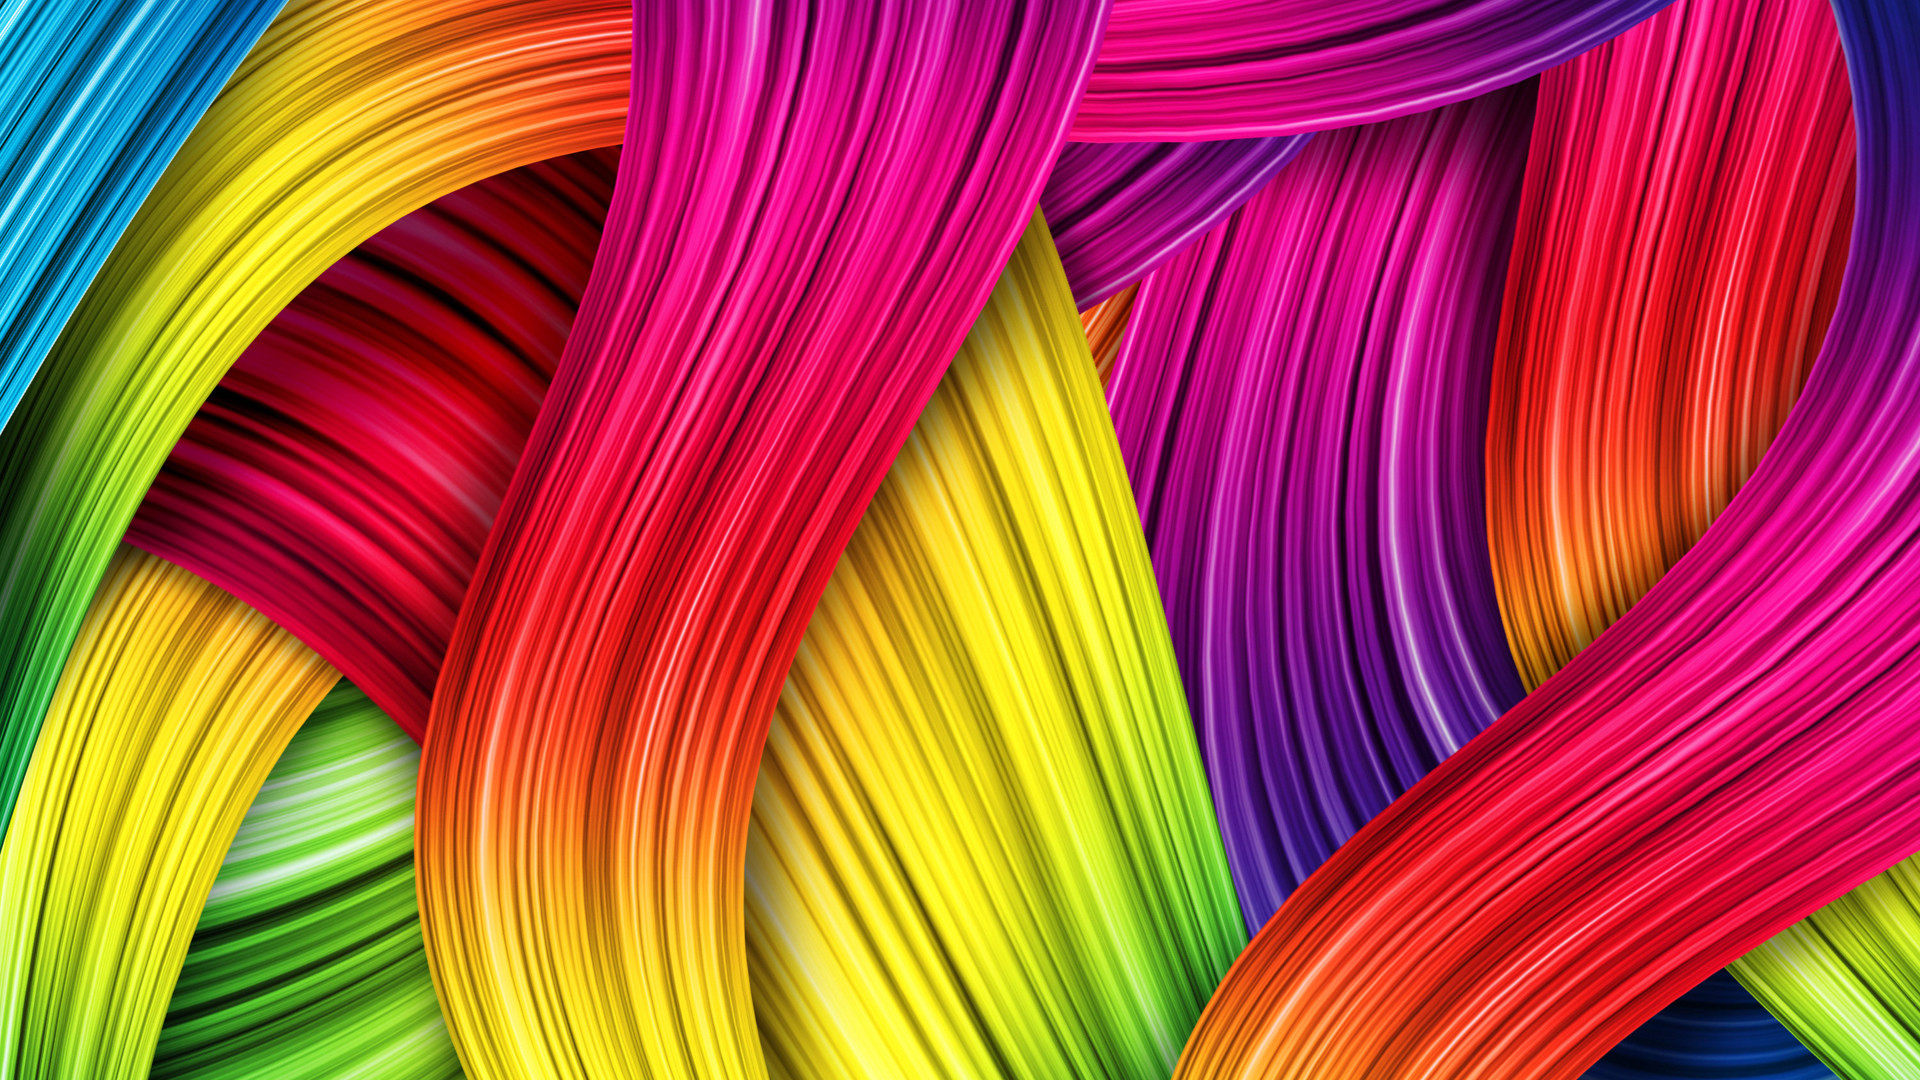 Colorful Wallpaper Hd 73 Images